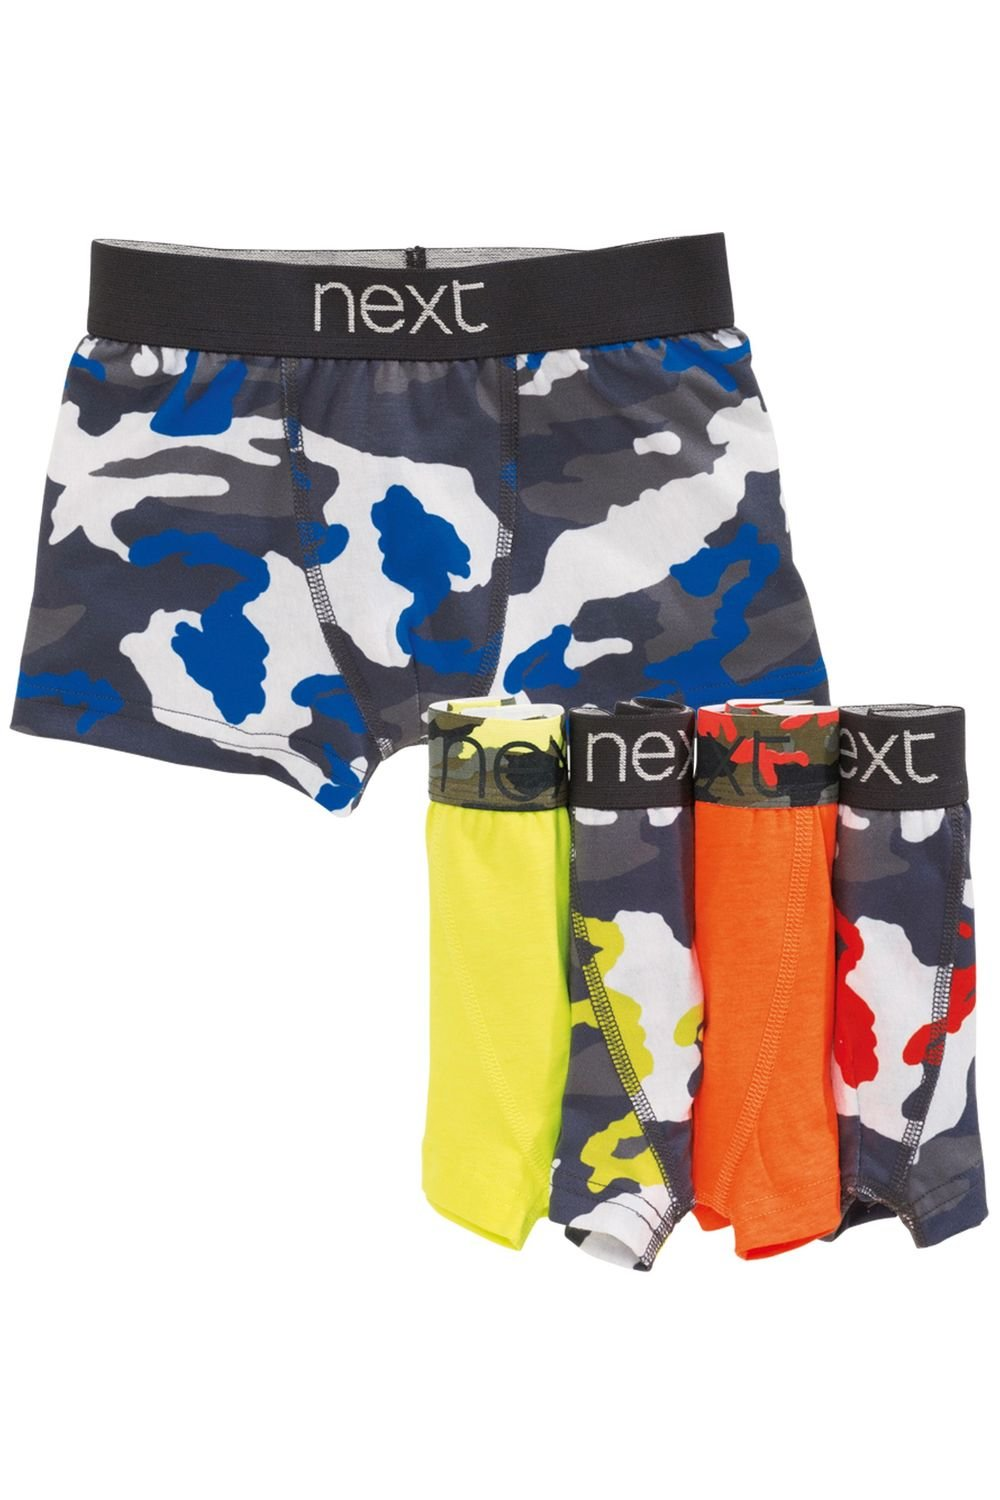 75a98effac Next Fluoro Camo Trunks Five Pack (2-16yrs) Online | Shop EziBuy